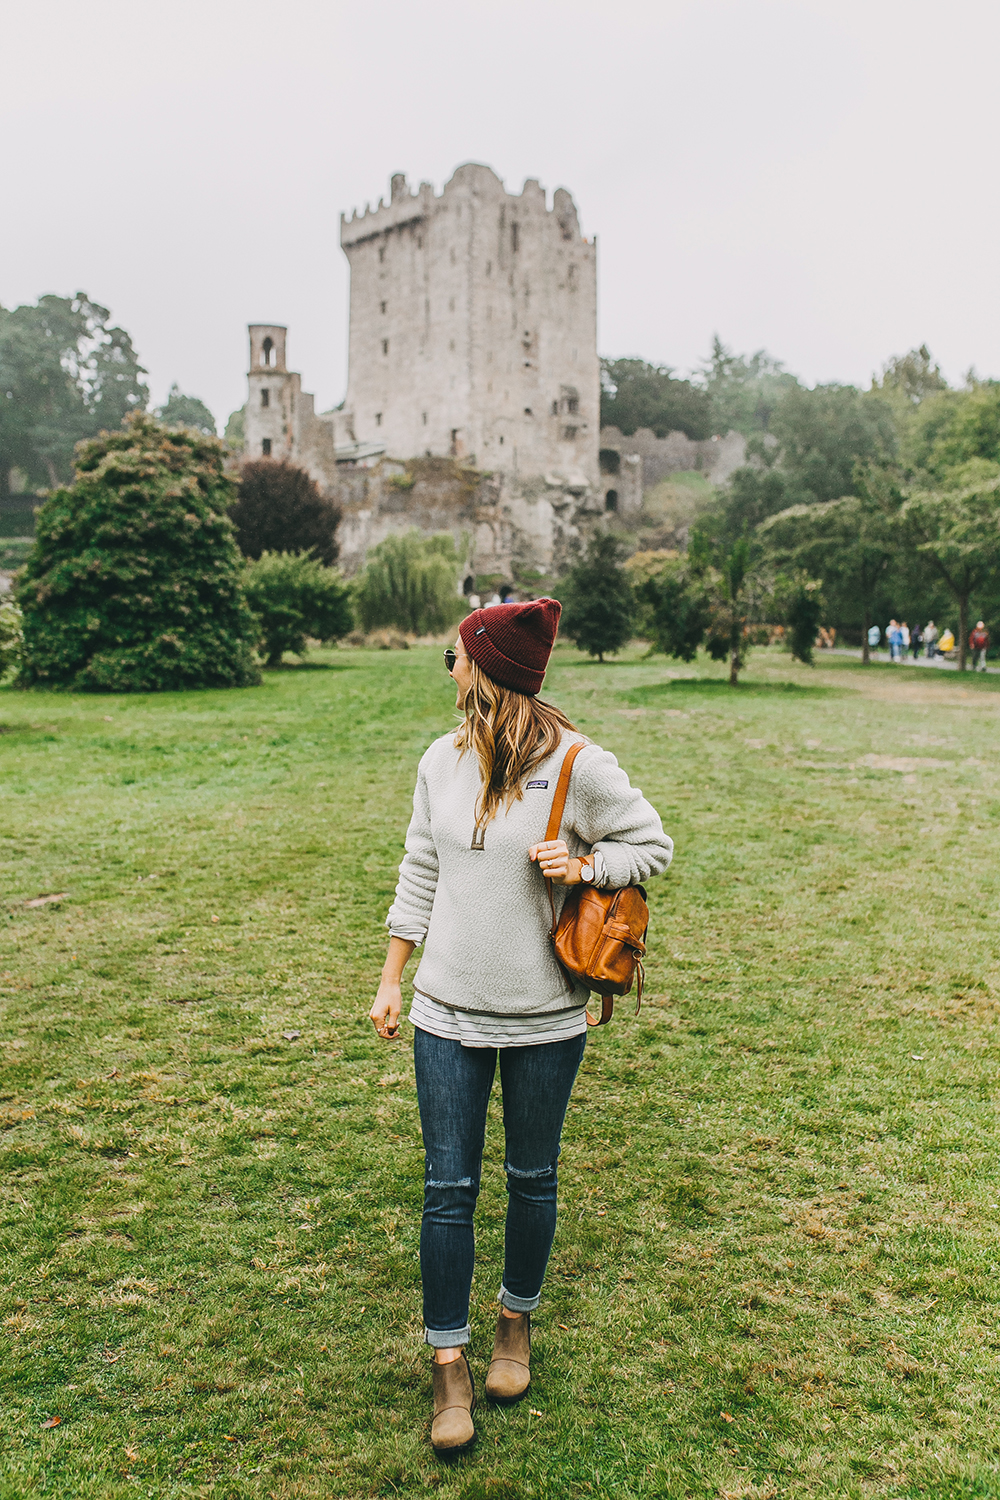 livvyland-blog-olivia-watson-austin-texas-travel-lifestyle-blogger-what-do-see-ireland-cork-blarney-castle-12